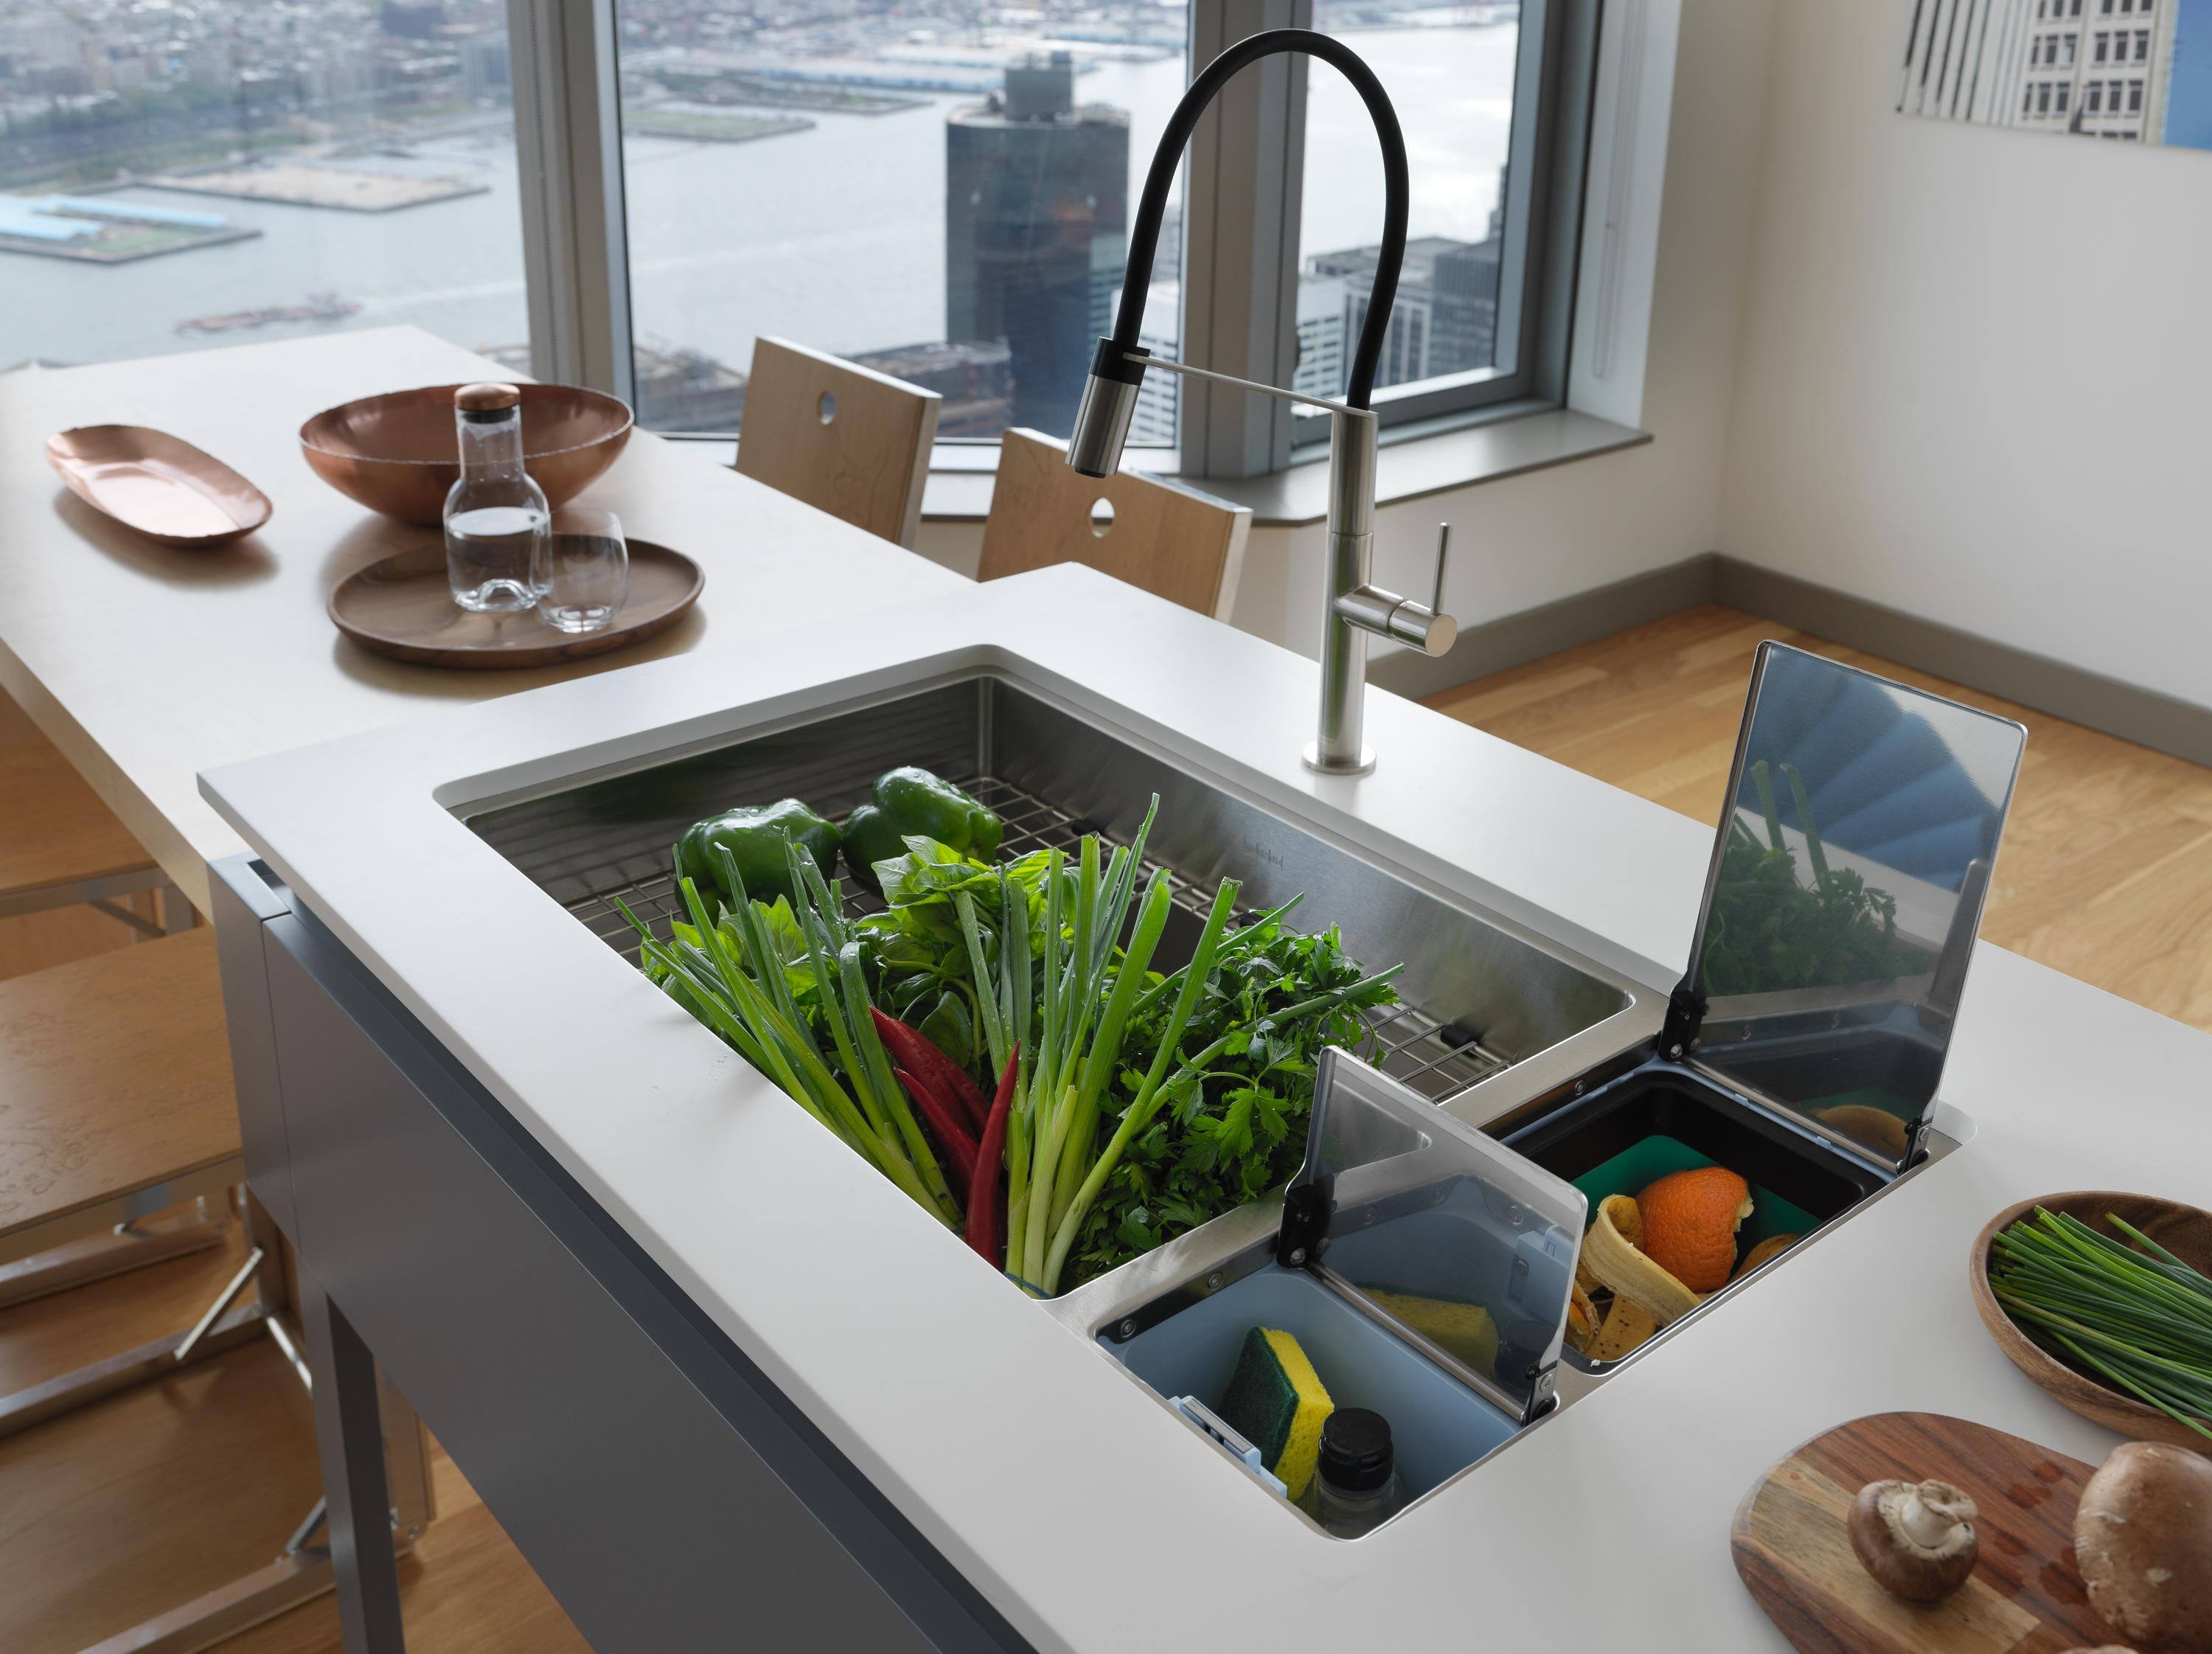 Chef center sinks stainless steel by franke kitchen systems